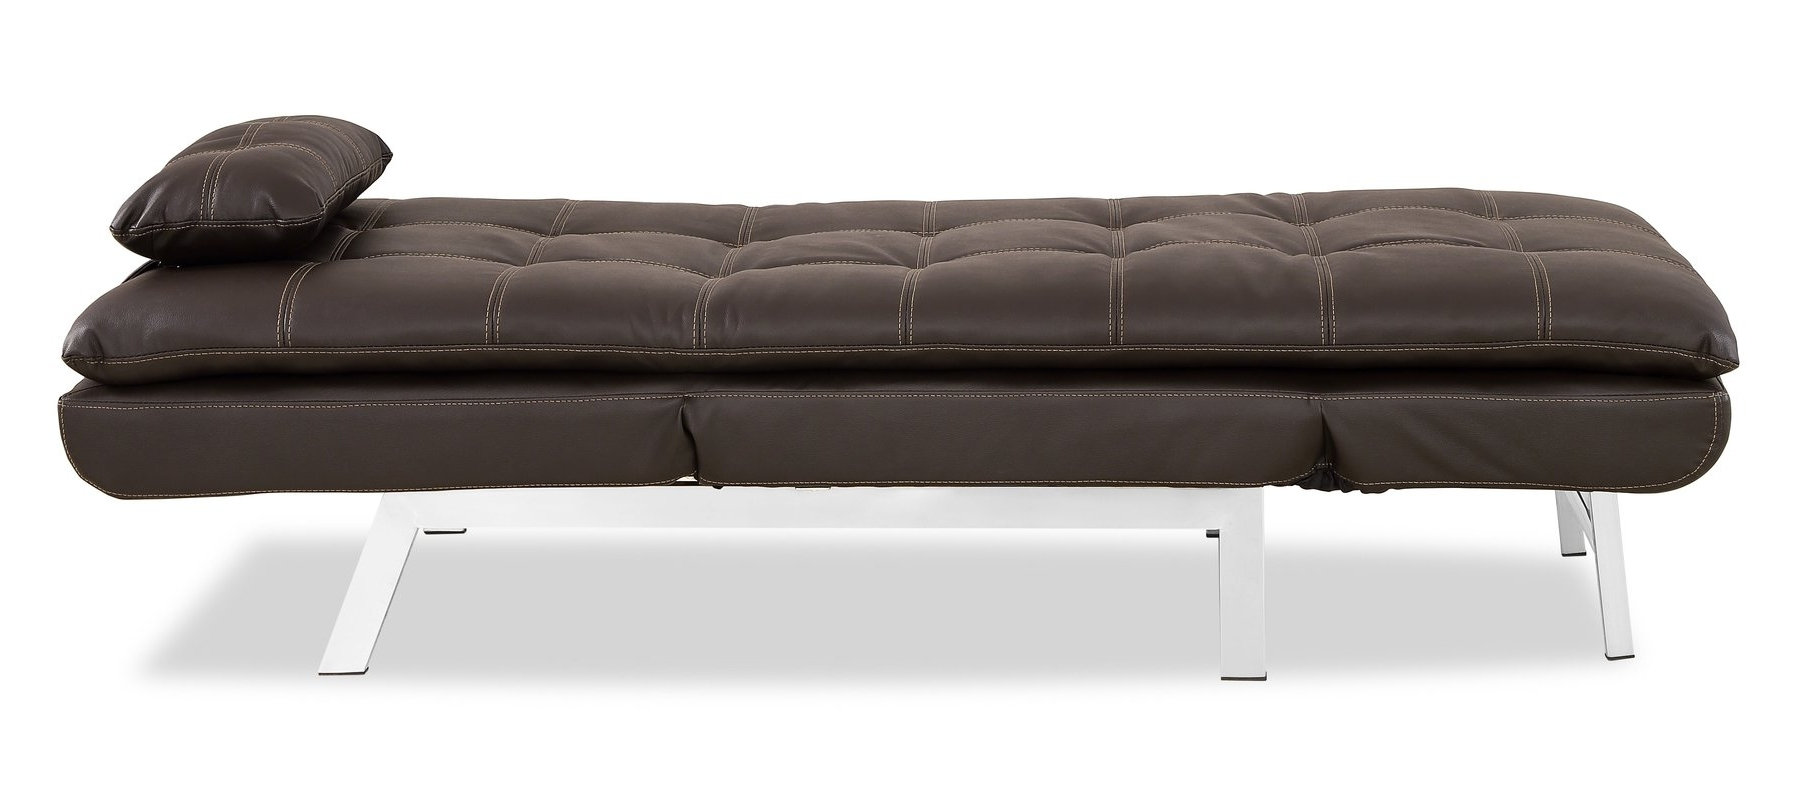 Serta Futons Vienna Convertible Chaise Lounge & Reviews (View 10 of 15)